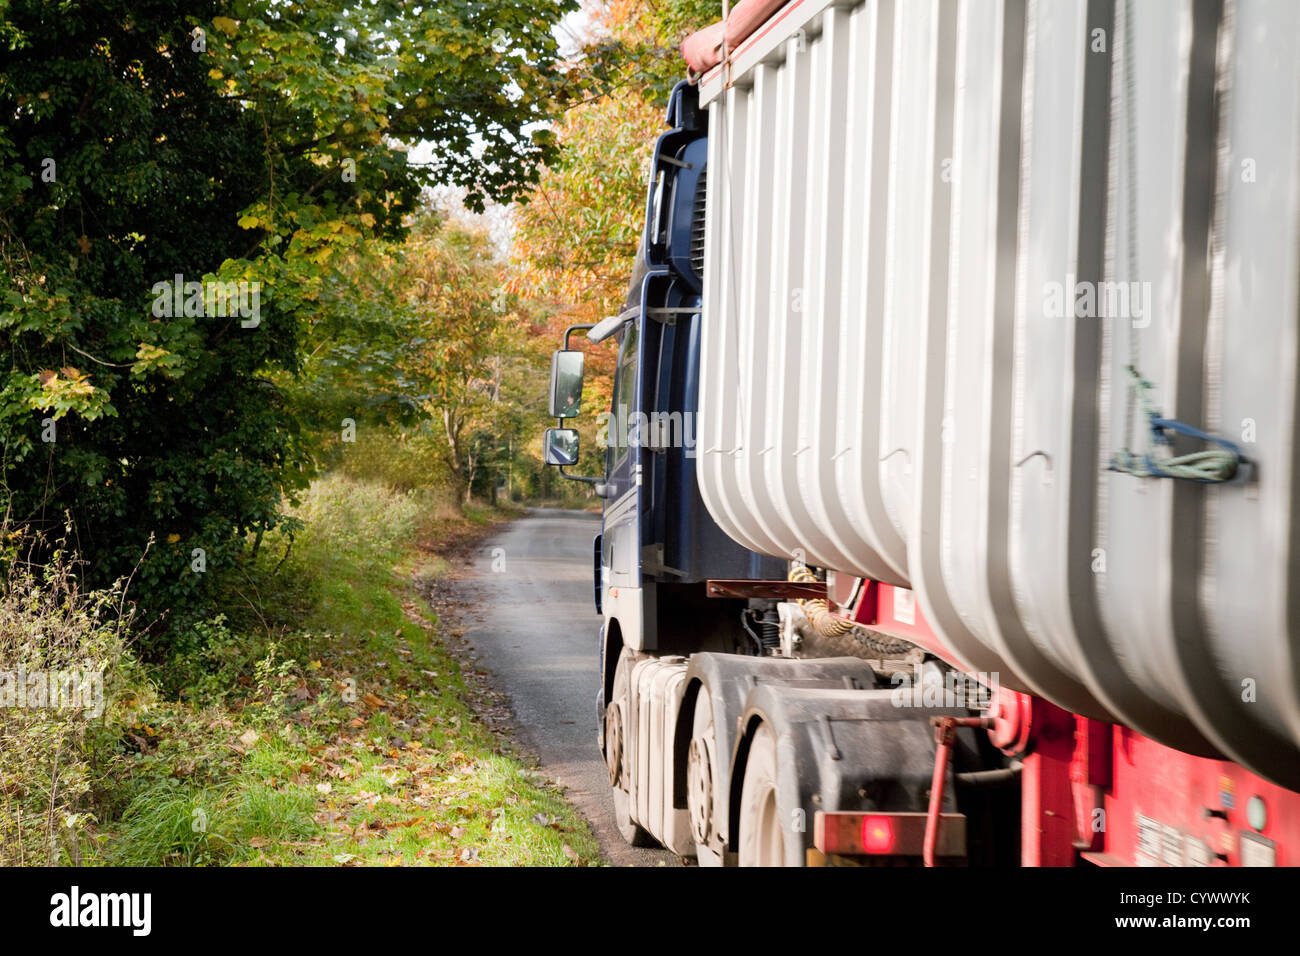 An HGV lorry driving on a narrow country road Suffolk UK - Stock Image